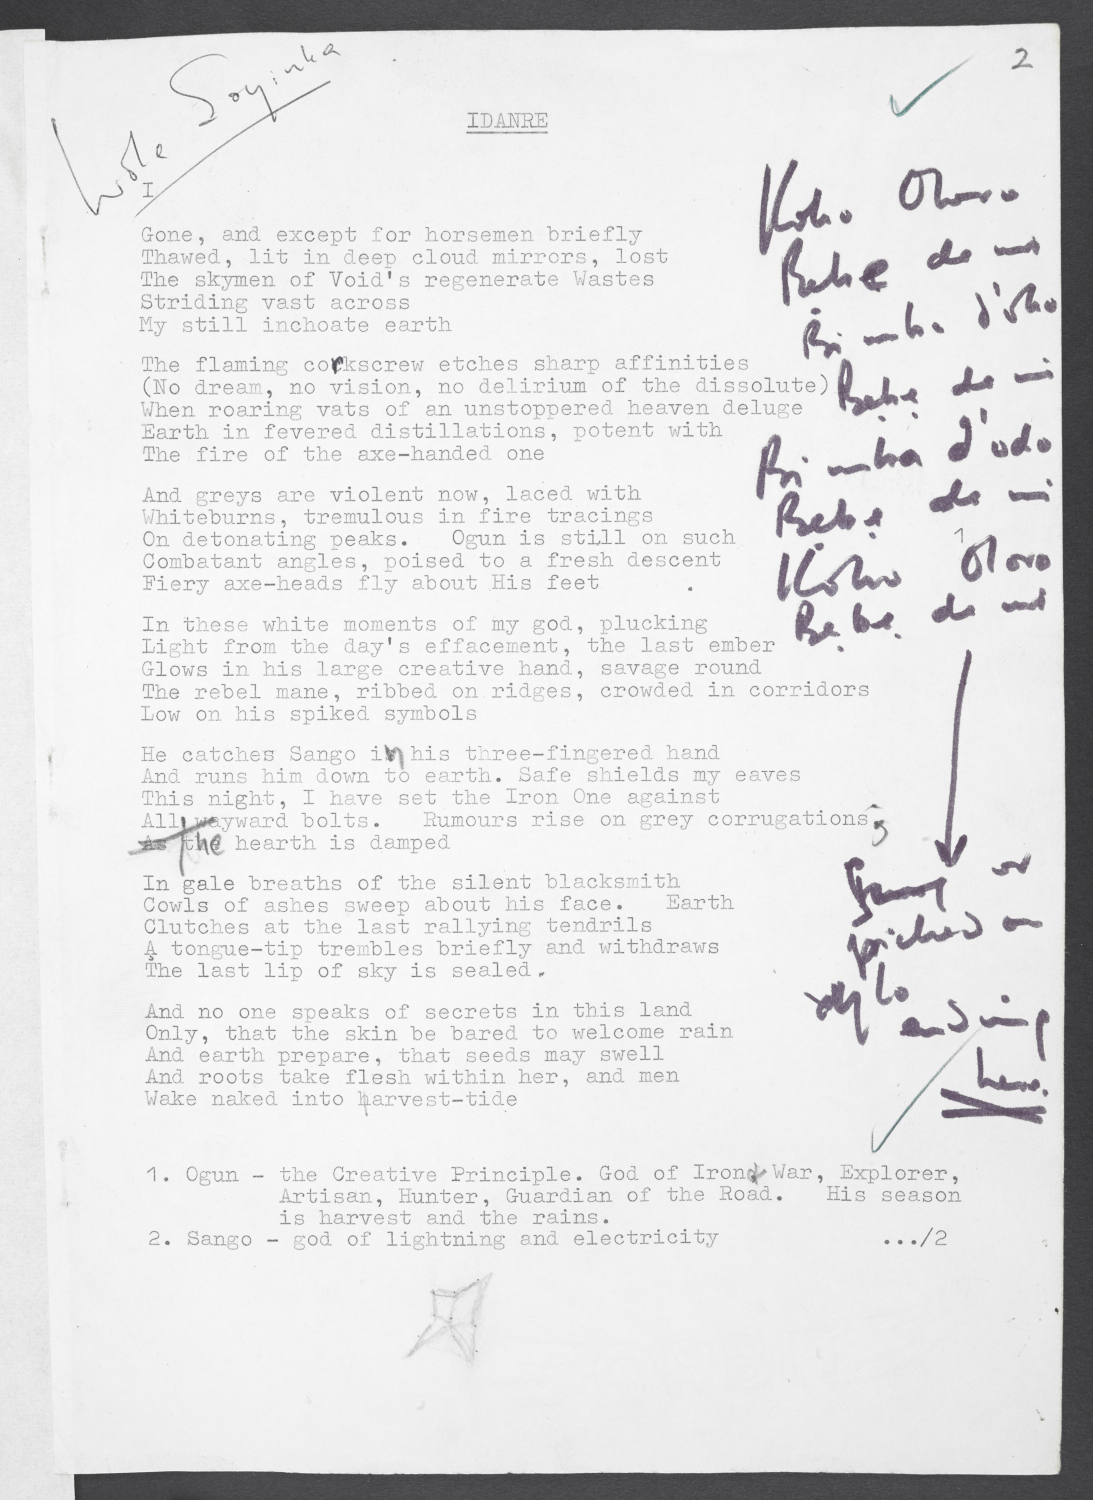 Selections from Wole Soyinka's annotated typescript of